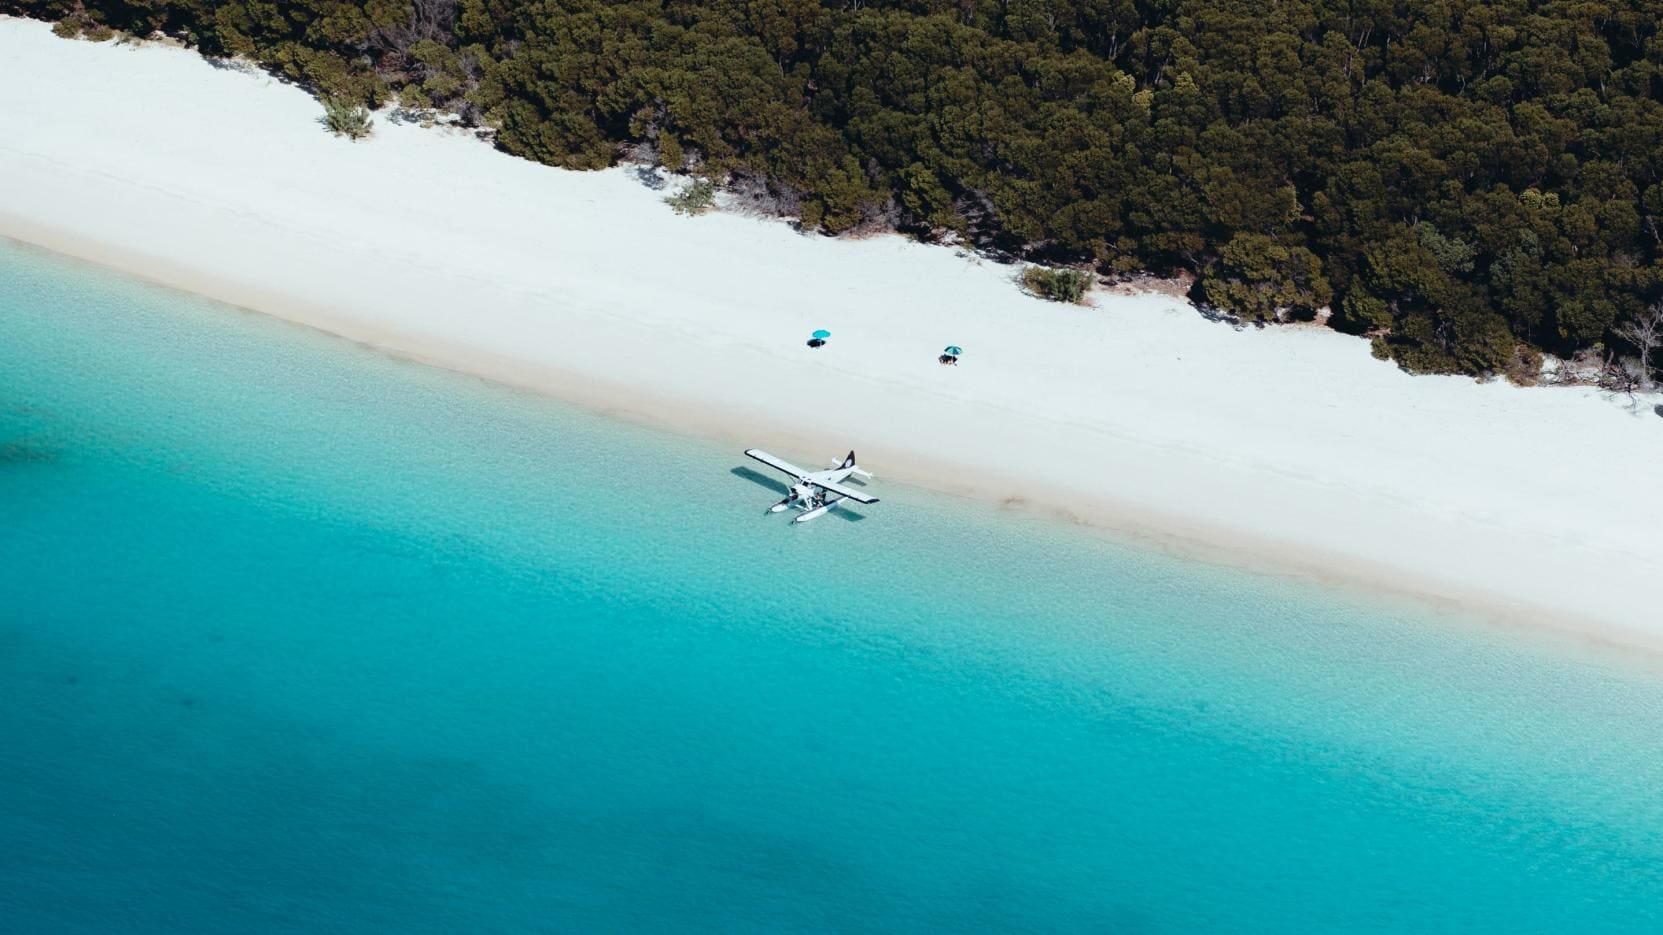 Whitehaven Beach, Whitsunday Islands, Queensland © Jason Hill, Tourism & Events Queensland